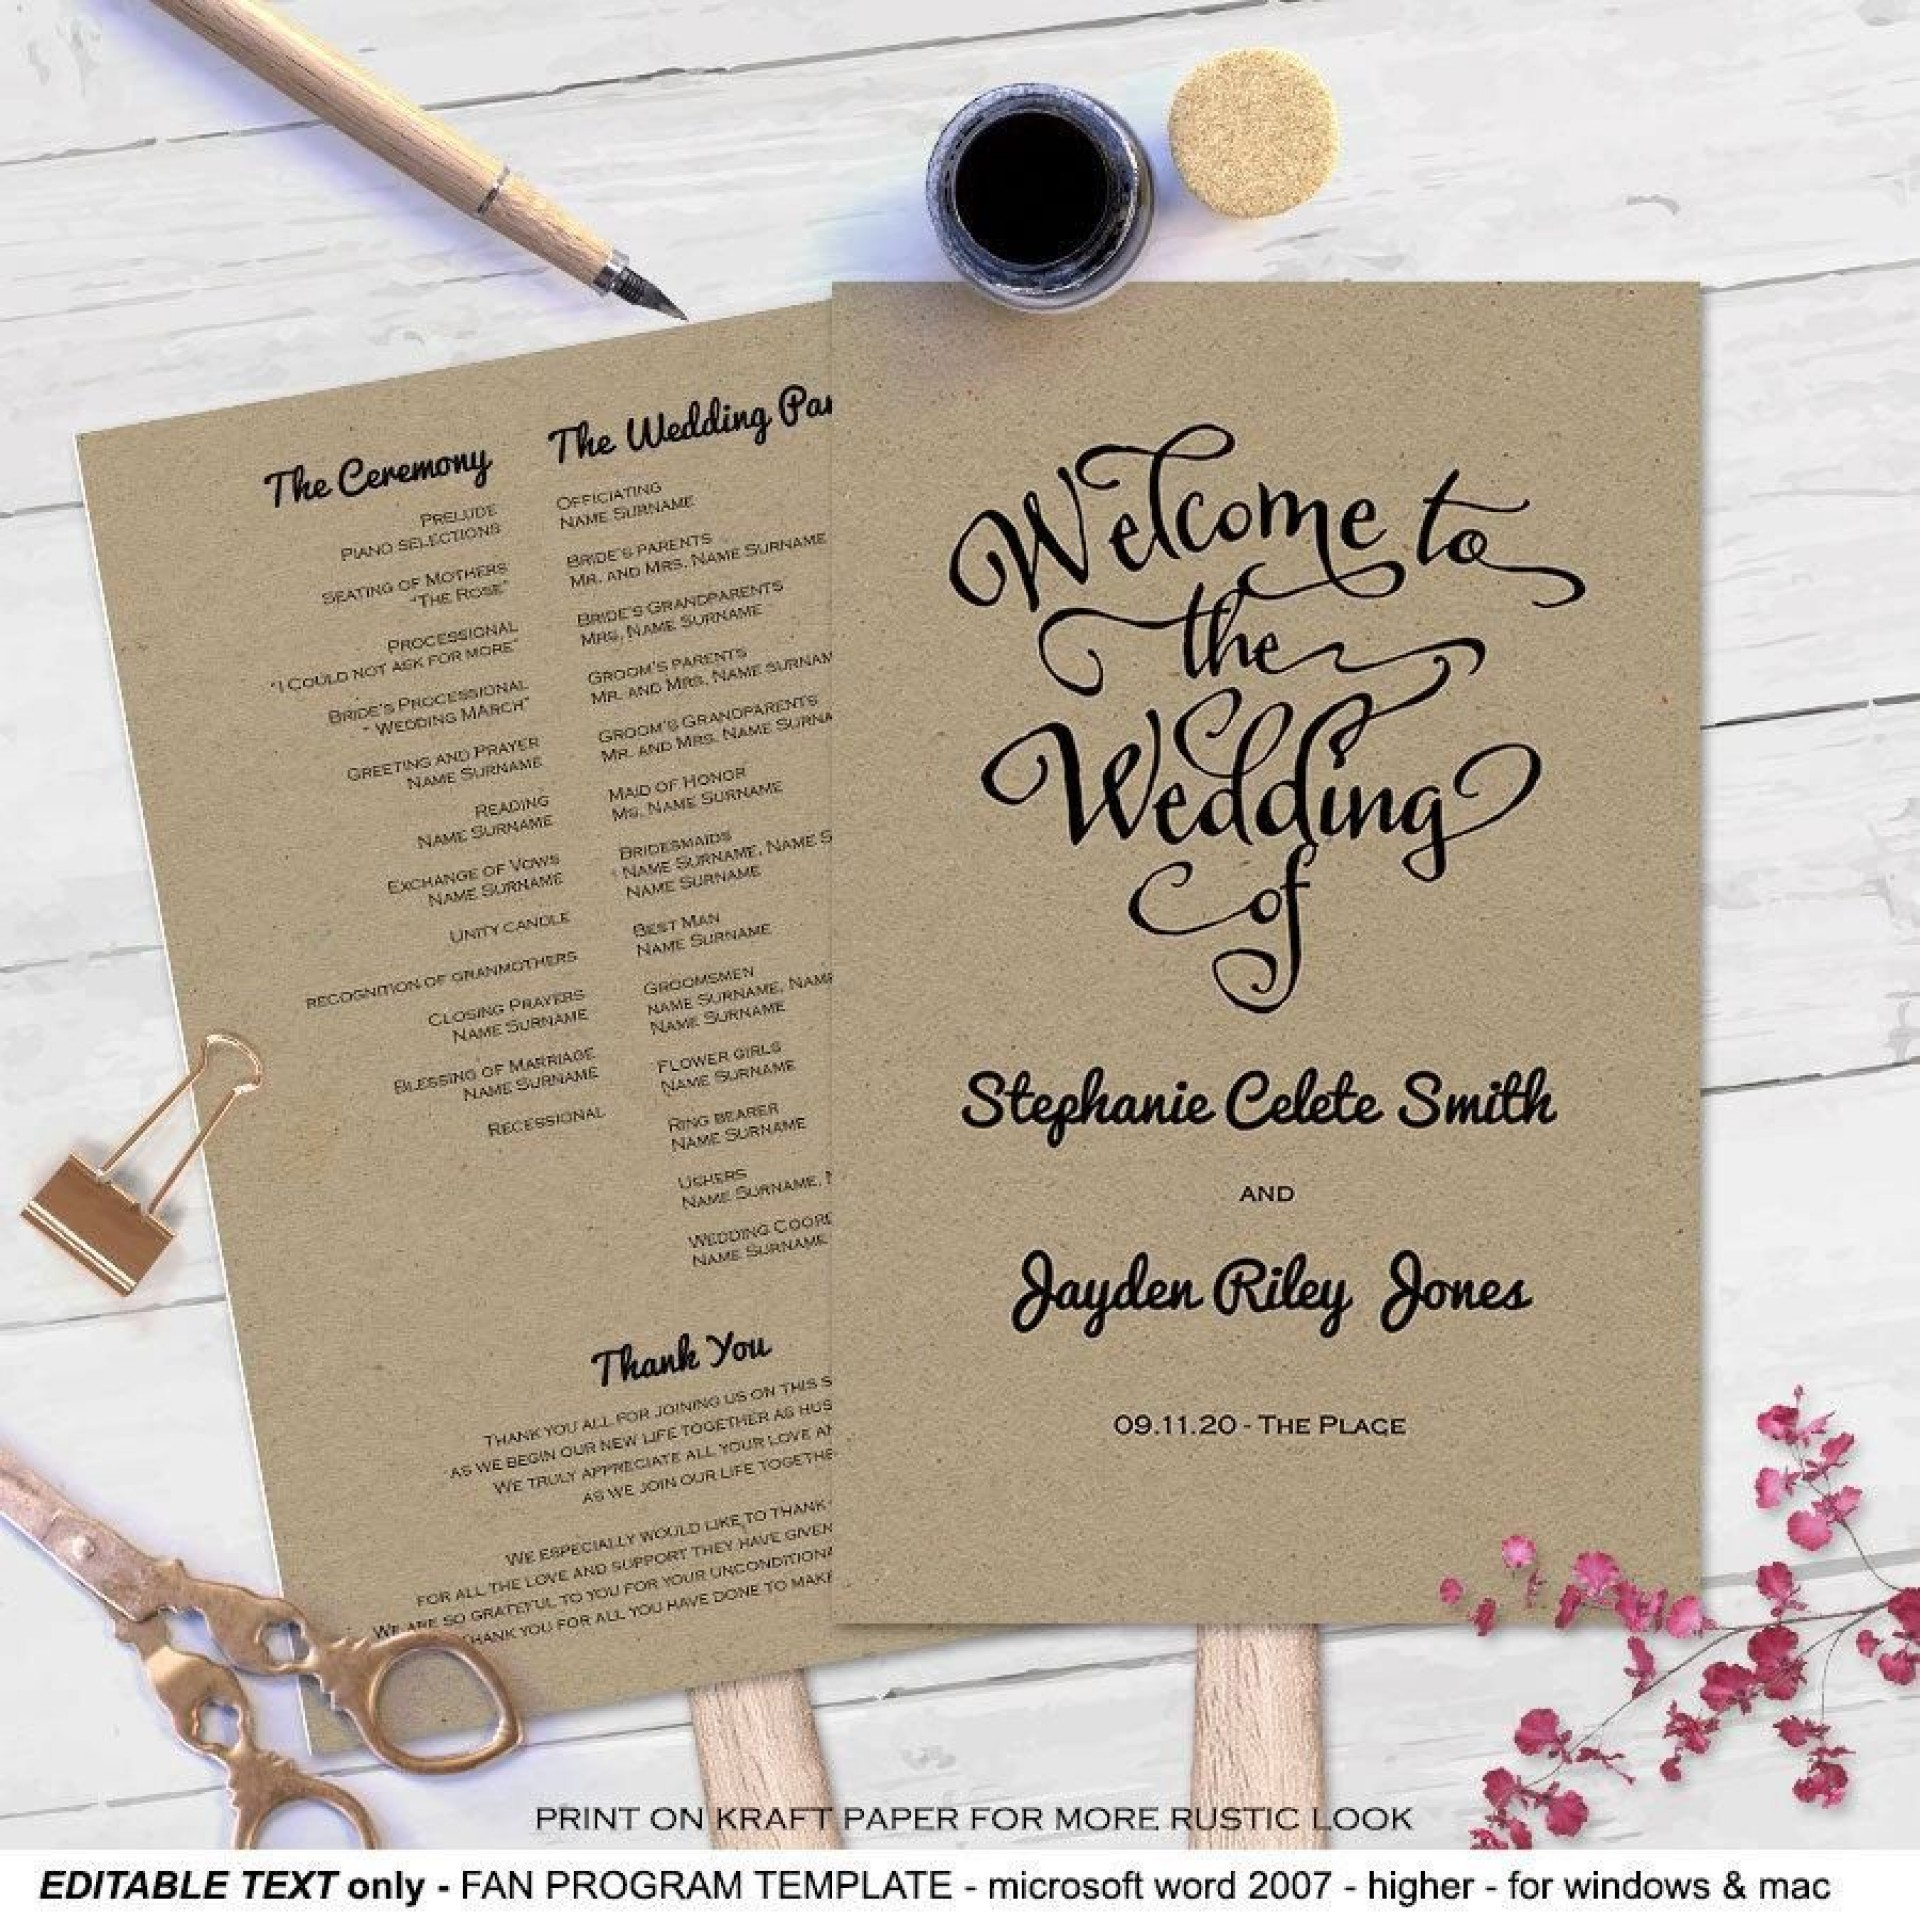 007 Unusual Wedding Program Fan Template Example  Free Word Paddle Downloadable That Can Be Printed1920